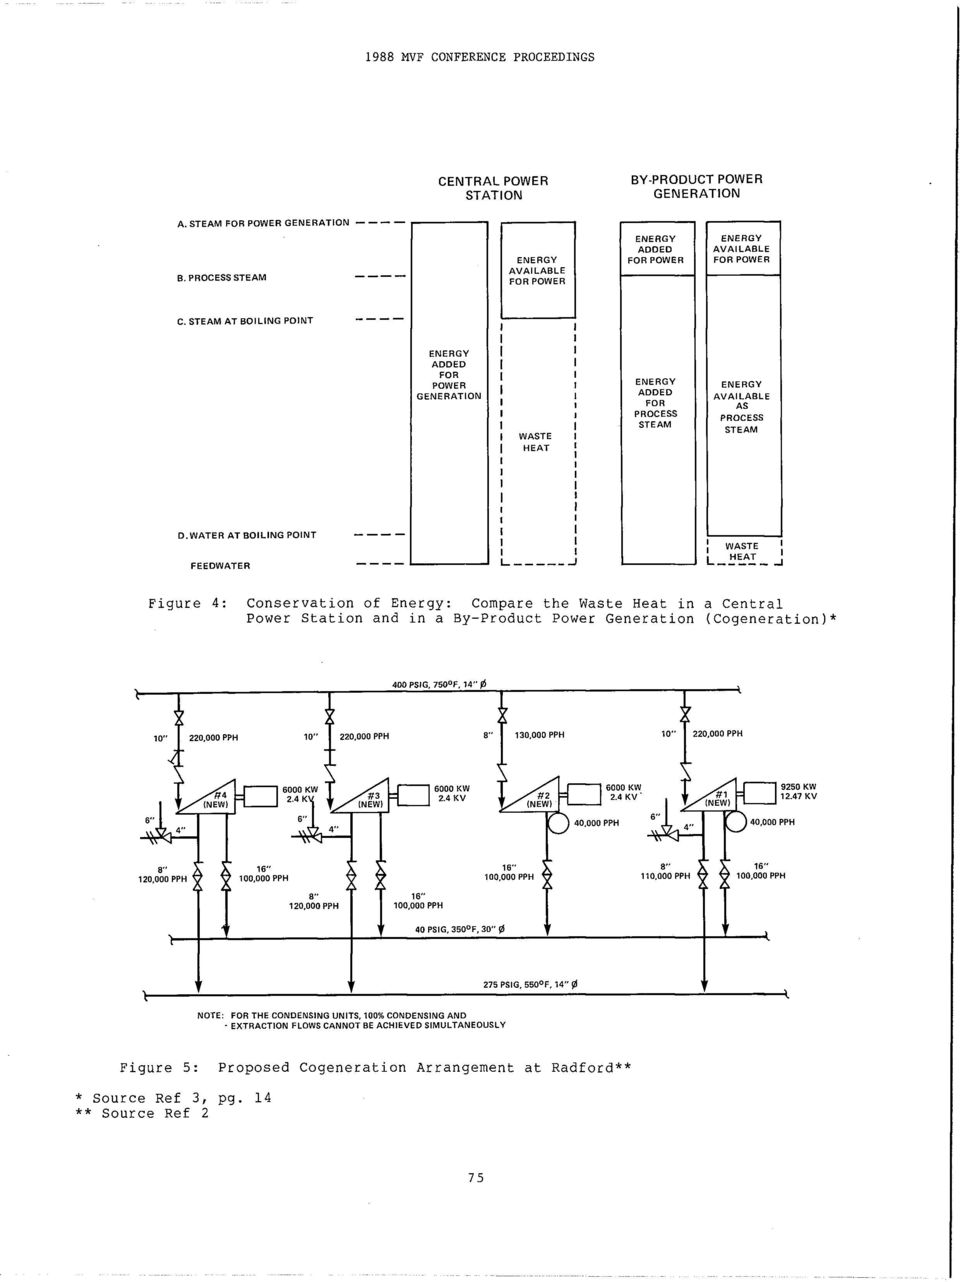 Cogeneration Of Electricity At Radford Army Ammunition Plant Aap Engine Diagram Water Boiling Point Feedwater I Waste Figure 4 Conservation Energy Compare